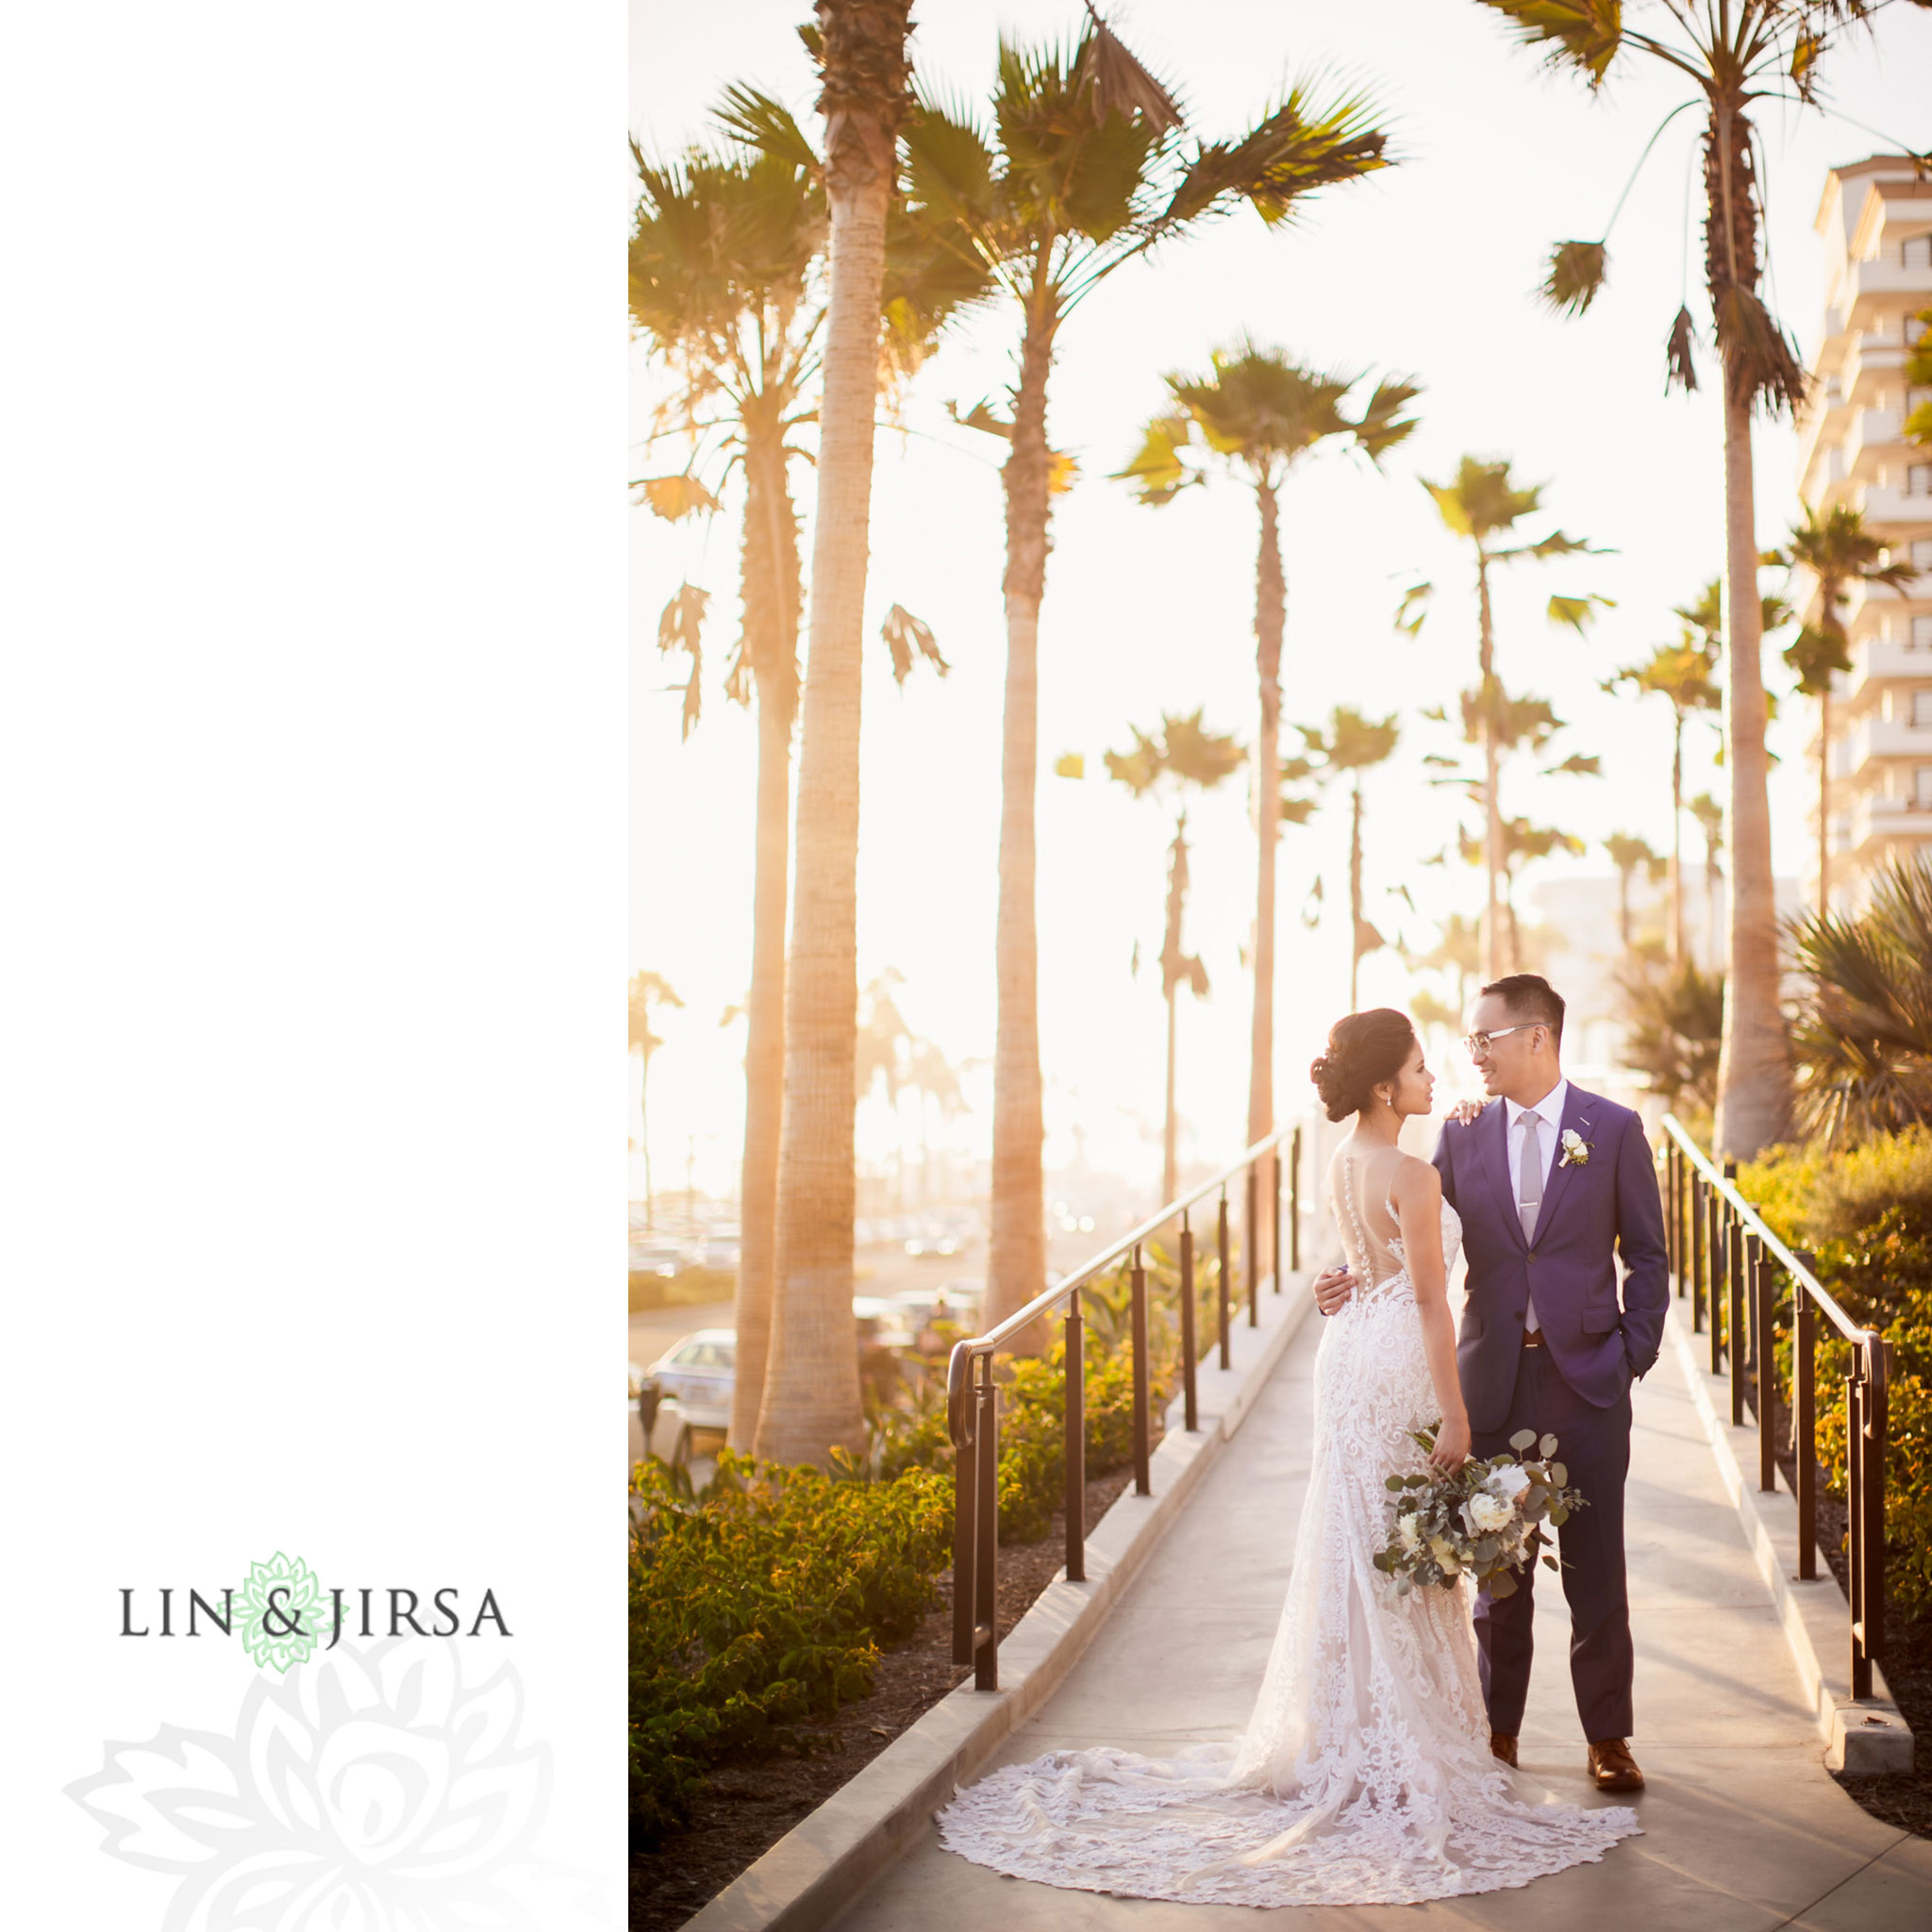 35 The Waterfront Beach Resort Huntington Beach Wedding Photography